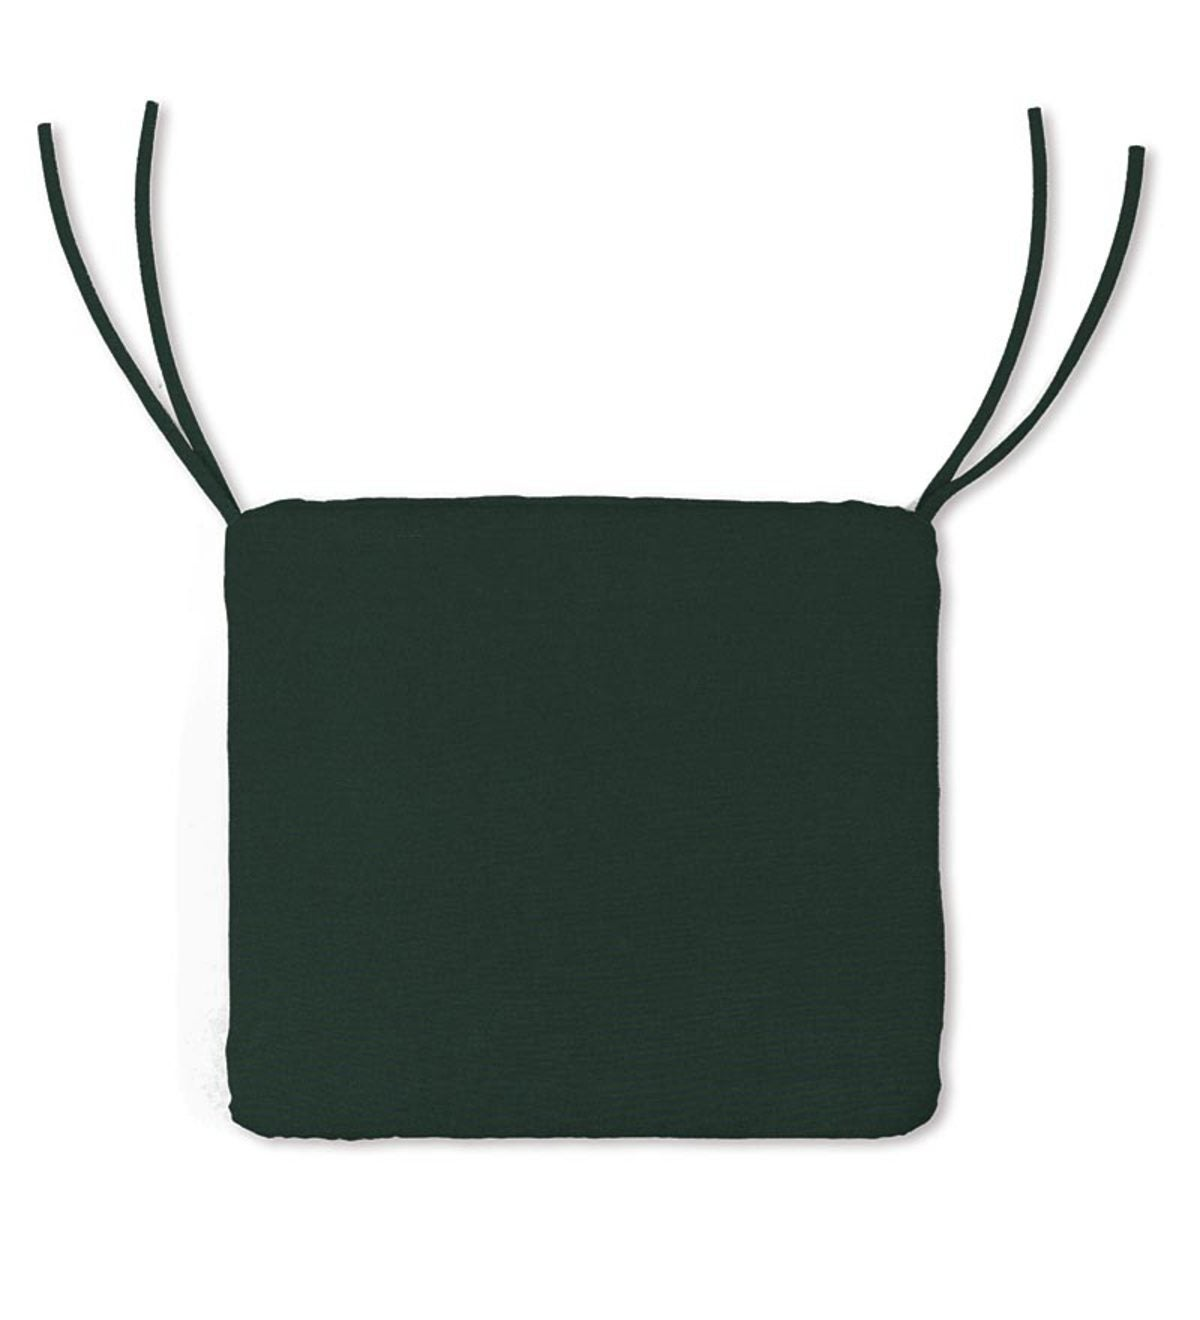 "Polyester Classic Chair Cushions with Ties, 20¾""x 20""x 3"" - Forest Green"